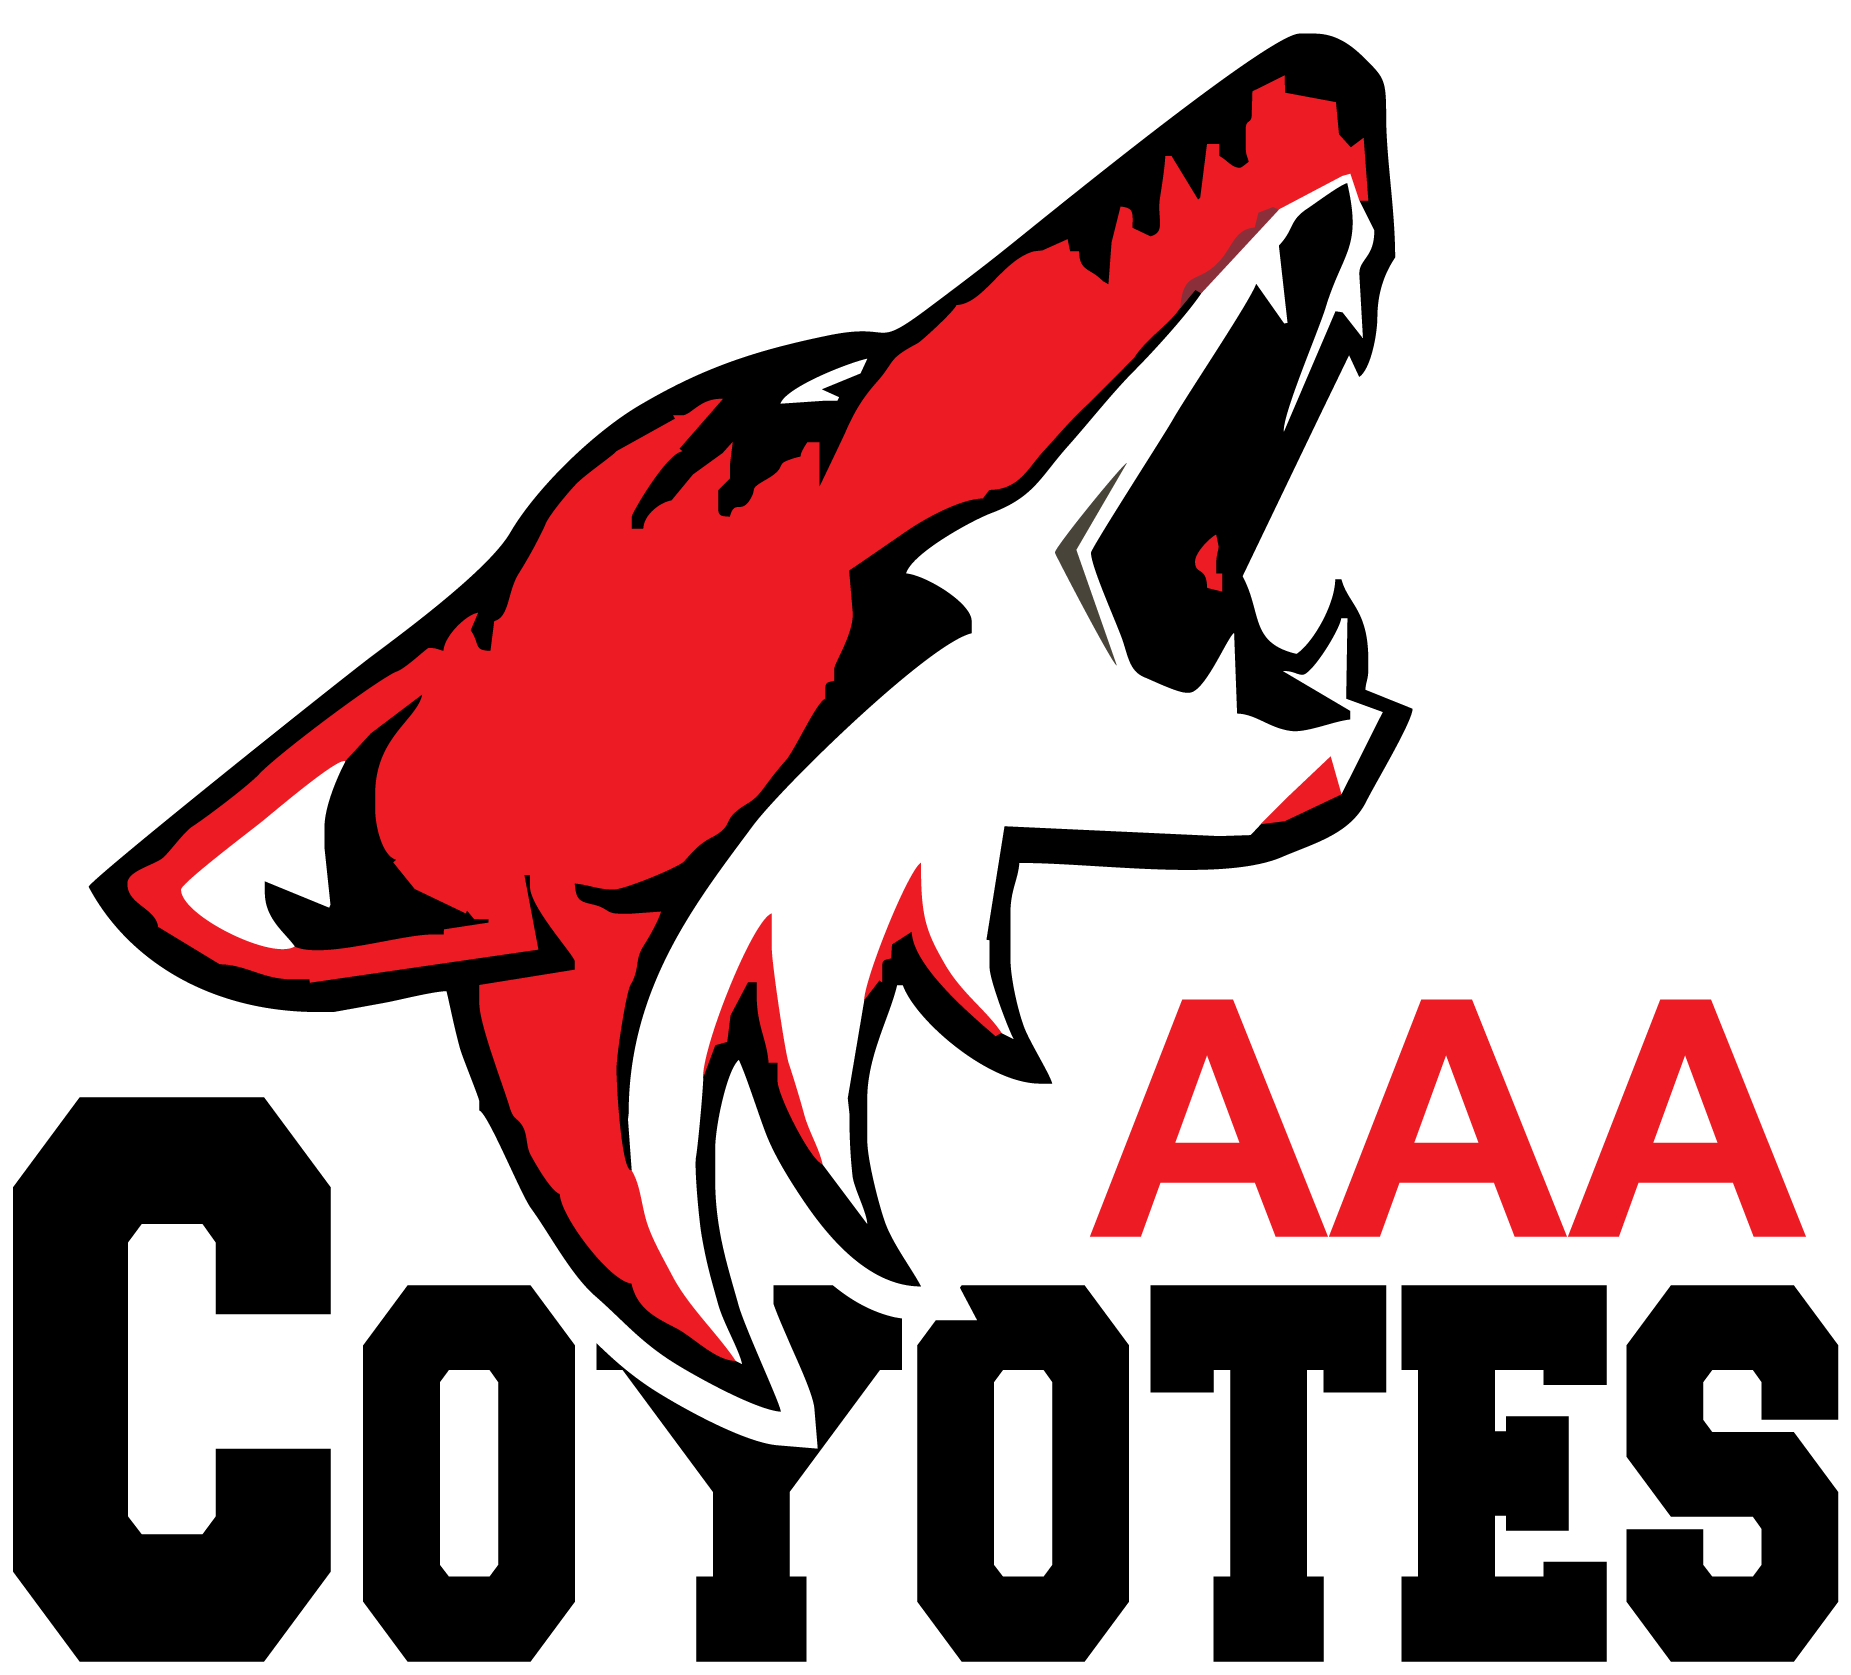 Coyotes-400